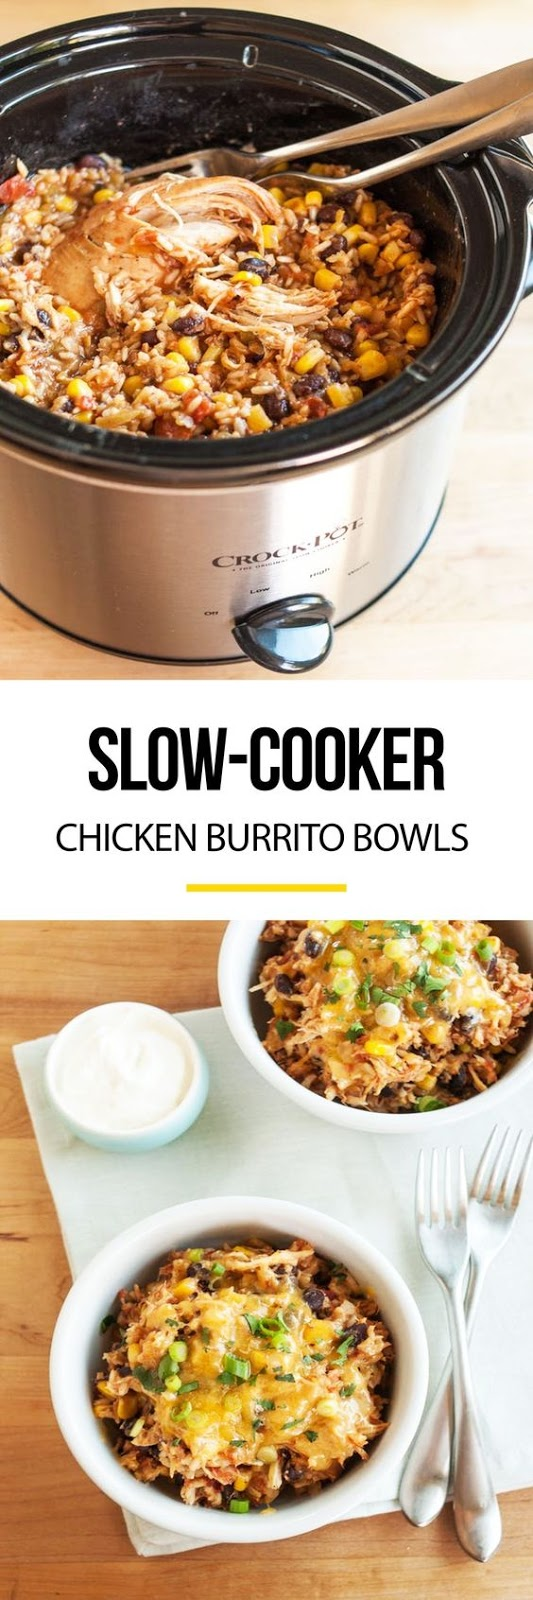 Slow-Cooker Chicken Burrito Bowls